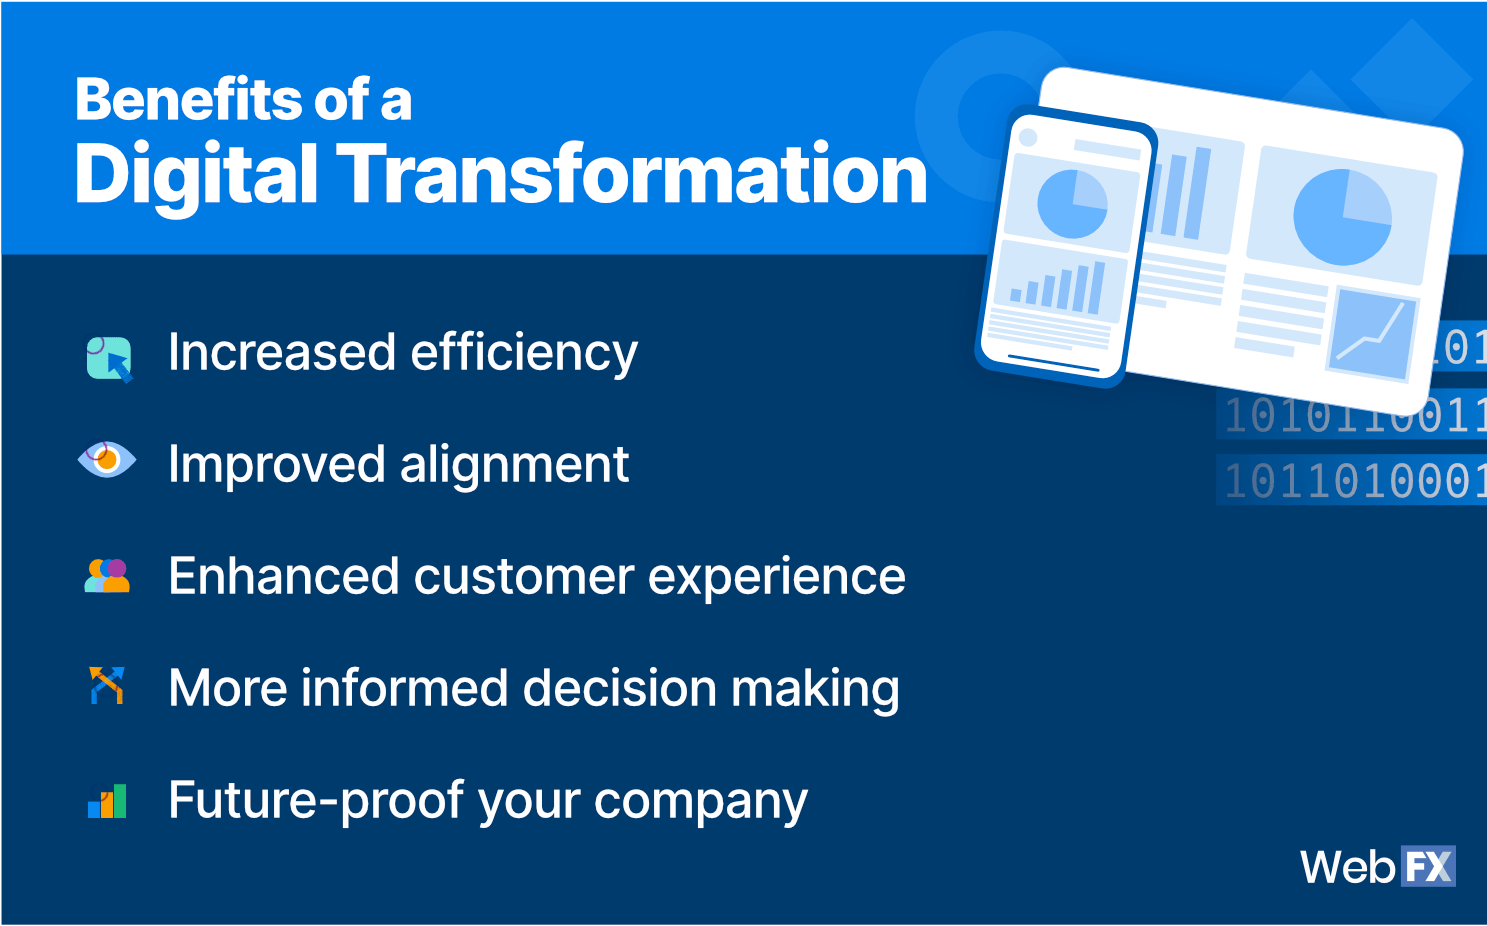 the benefits of digital transformation graphic